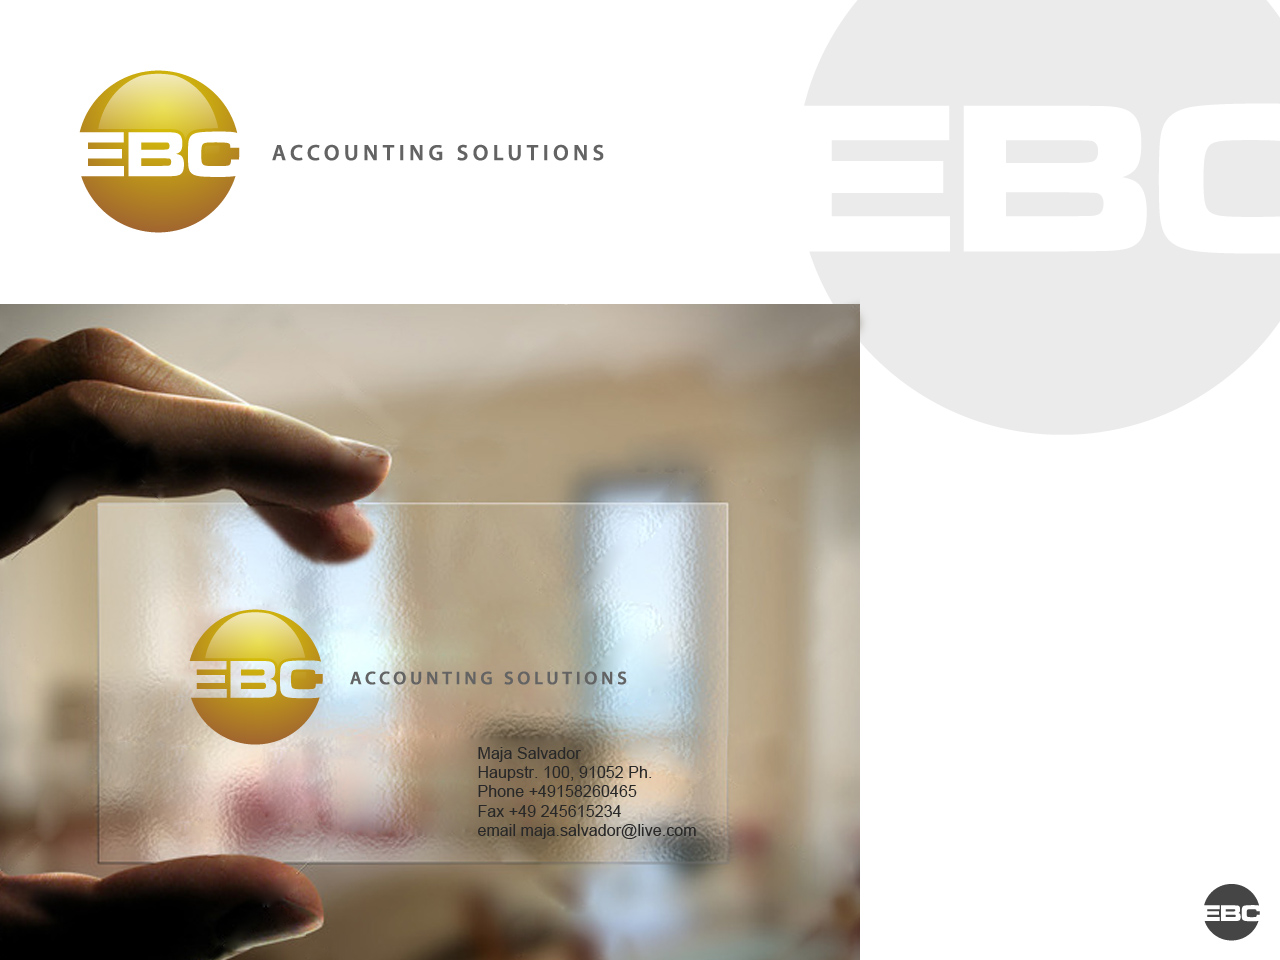 Logo Design by jpbituin - Entry No. 83 in the Logo Design Contest New Logo Design for EBC Accounting Solutions.